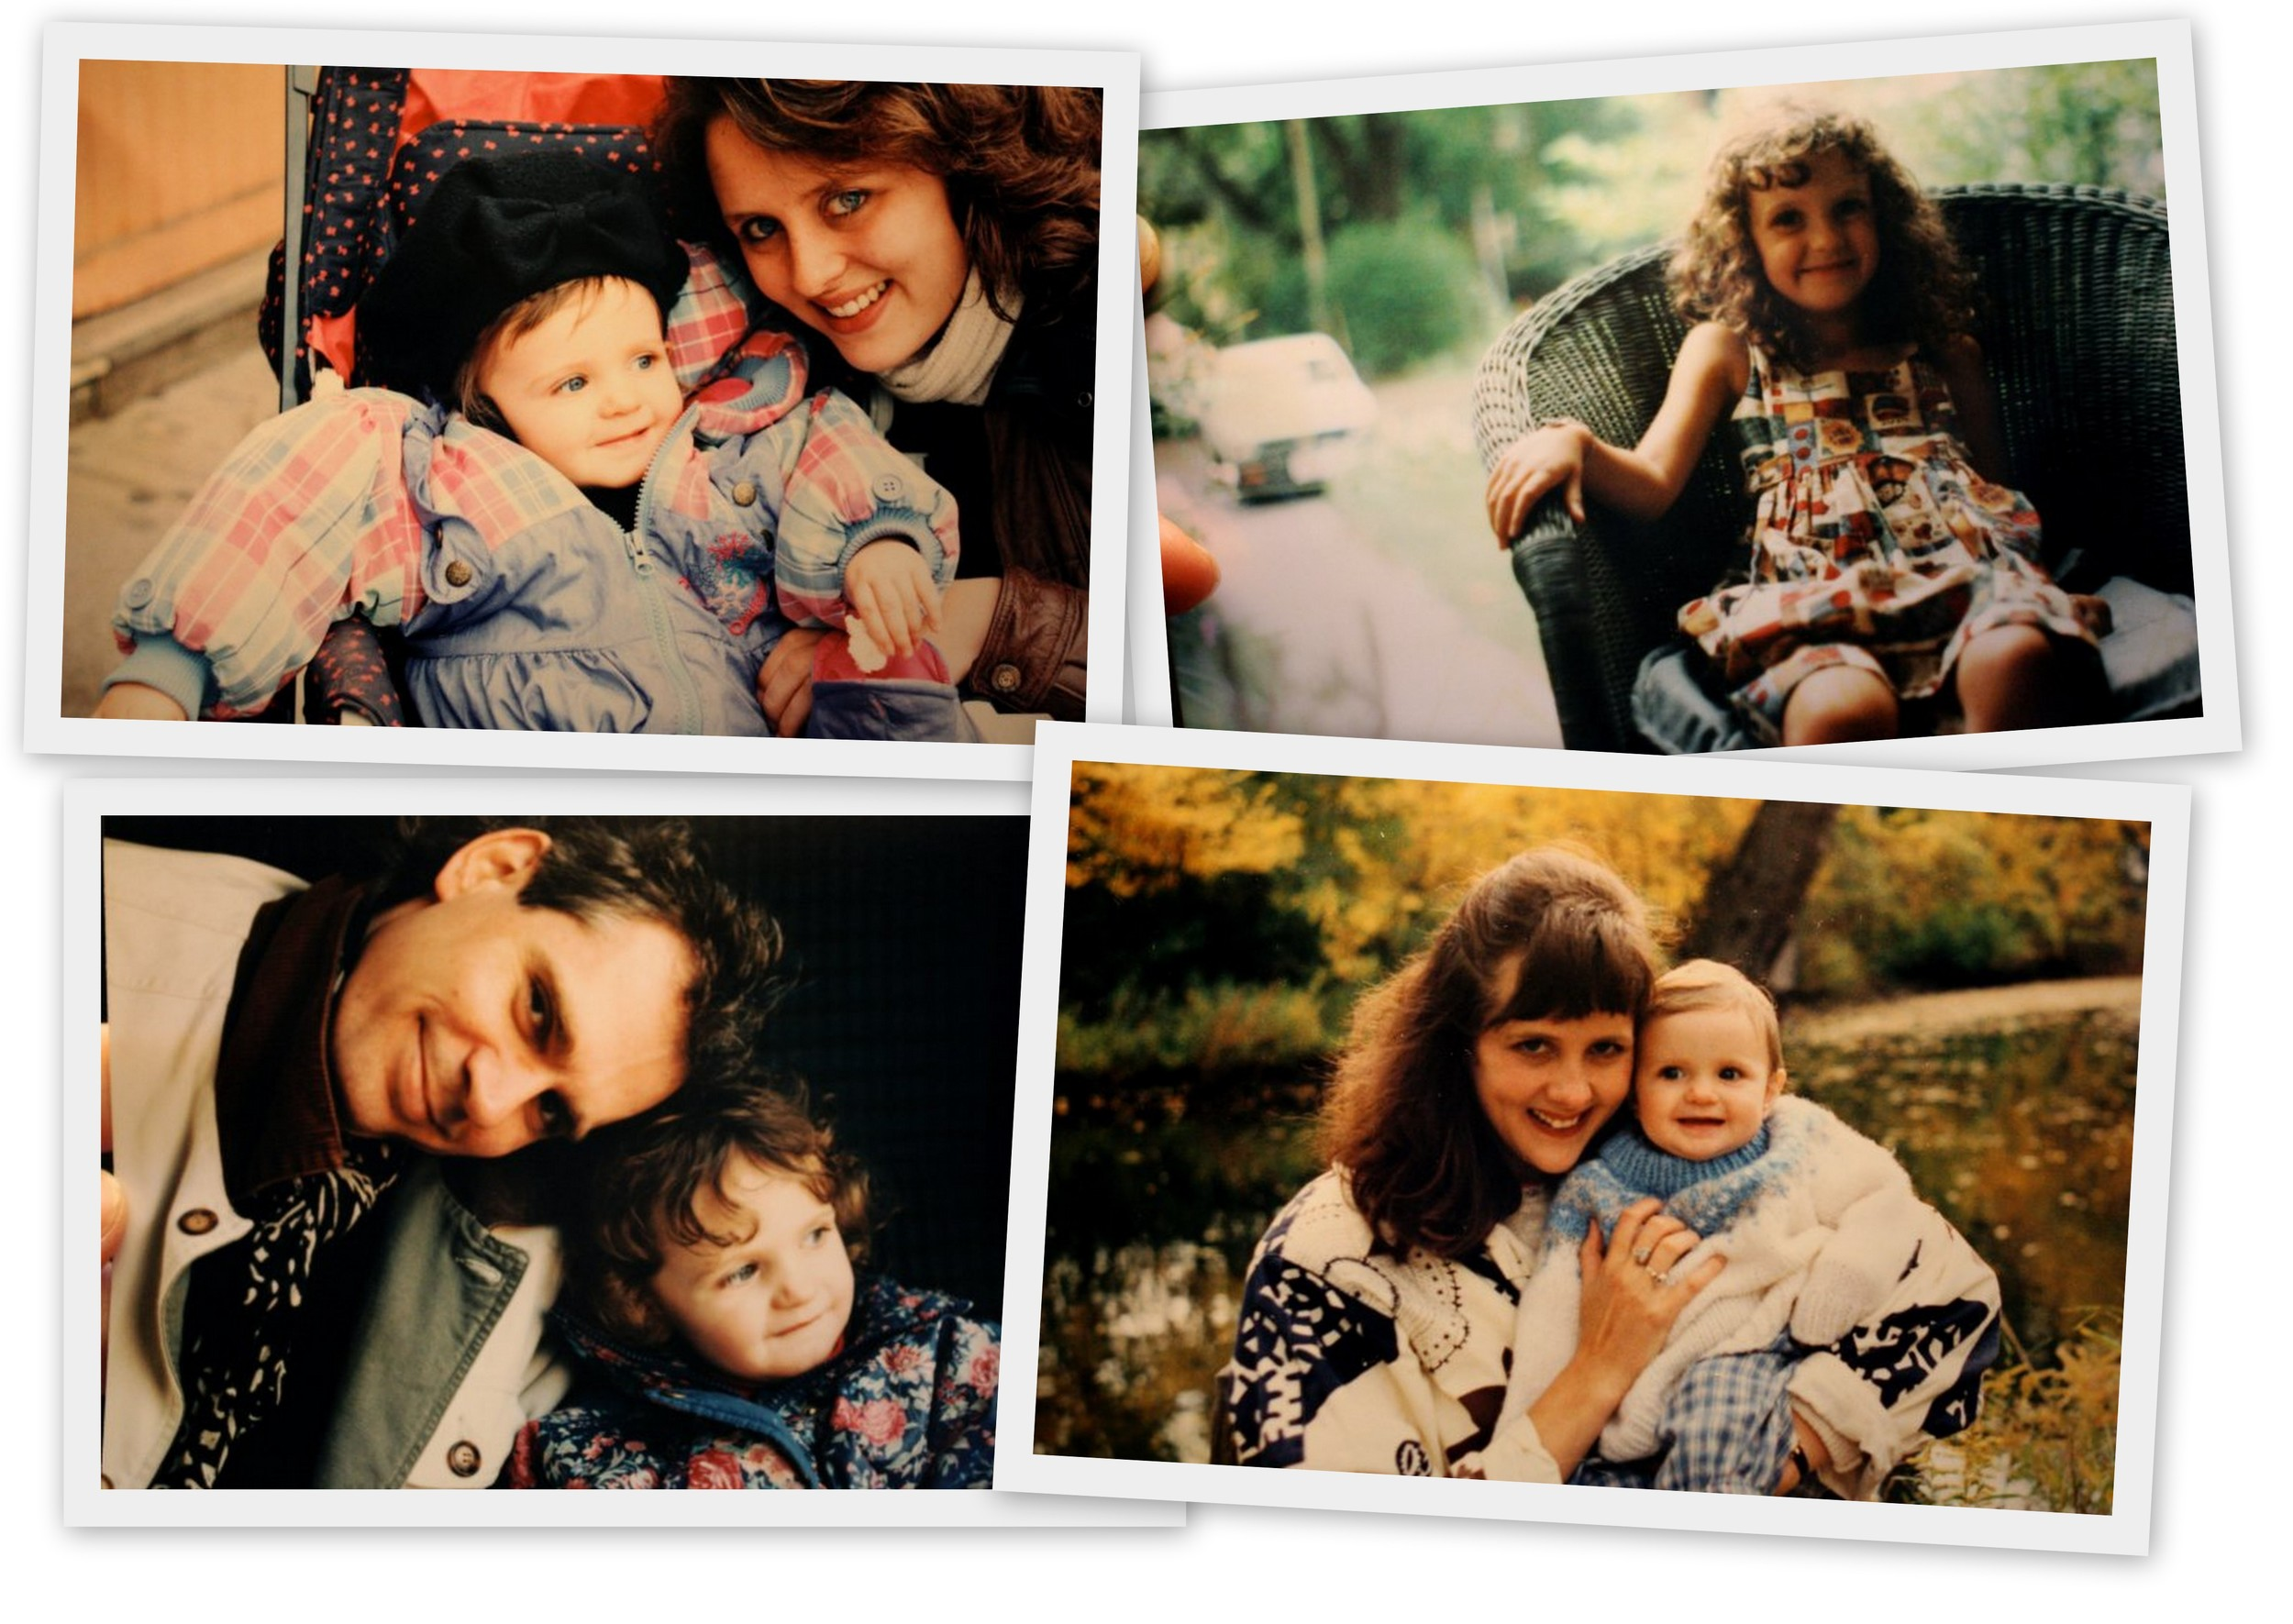 Family photos from the Hallam-Martin family from the 1990s